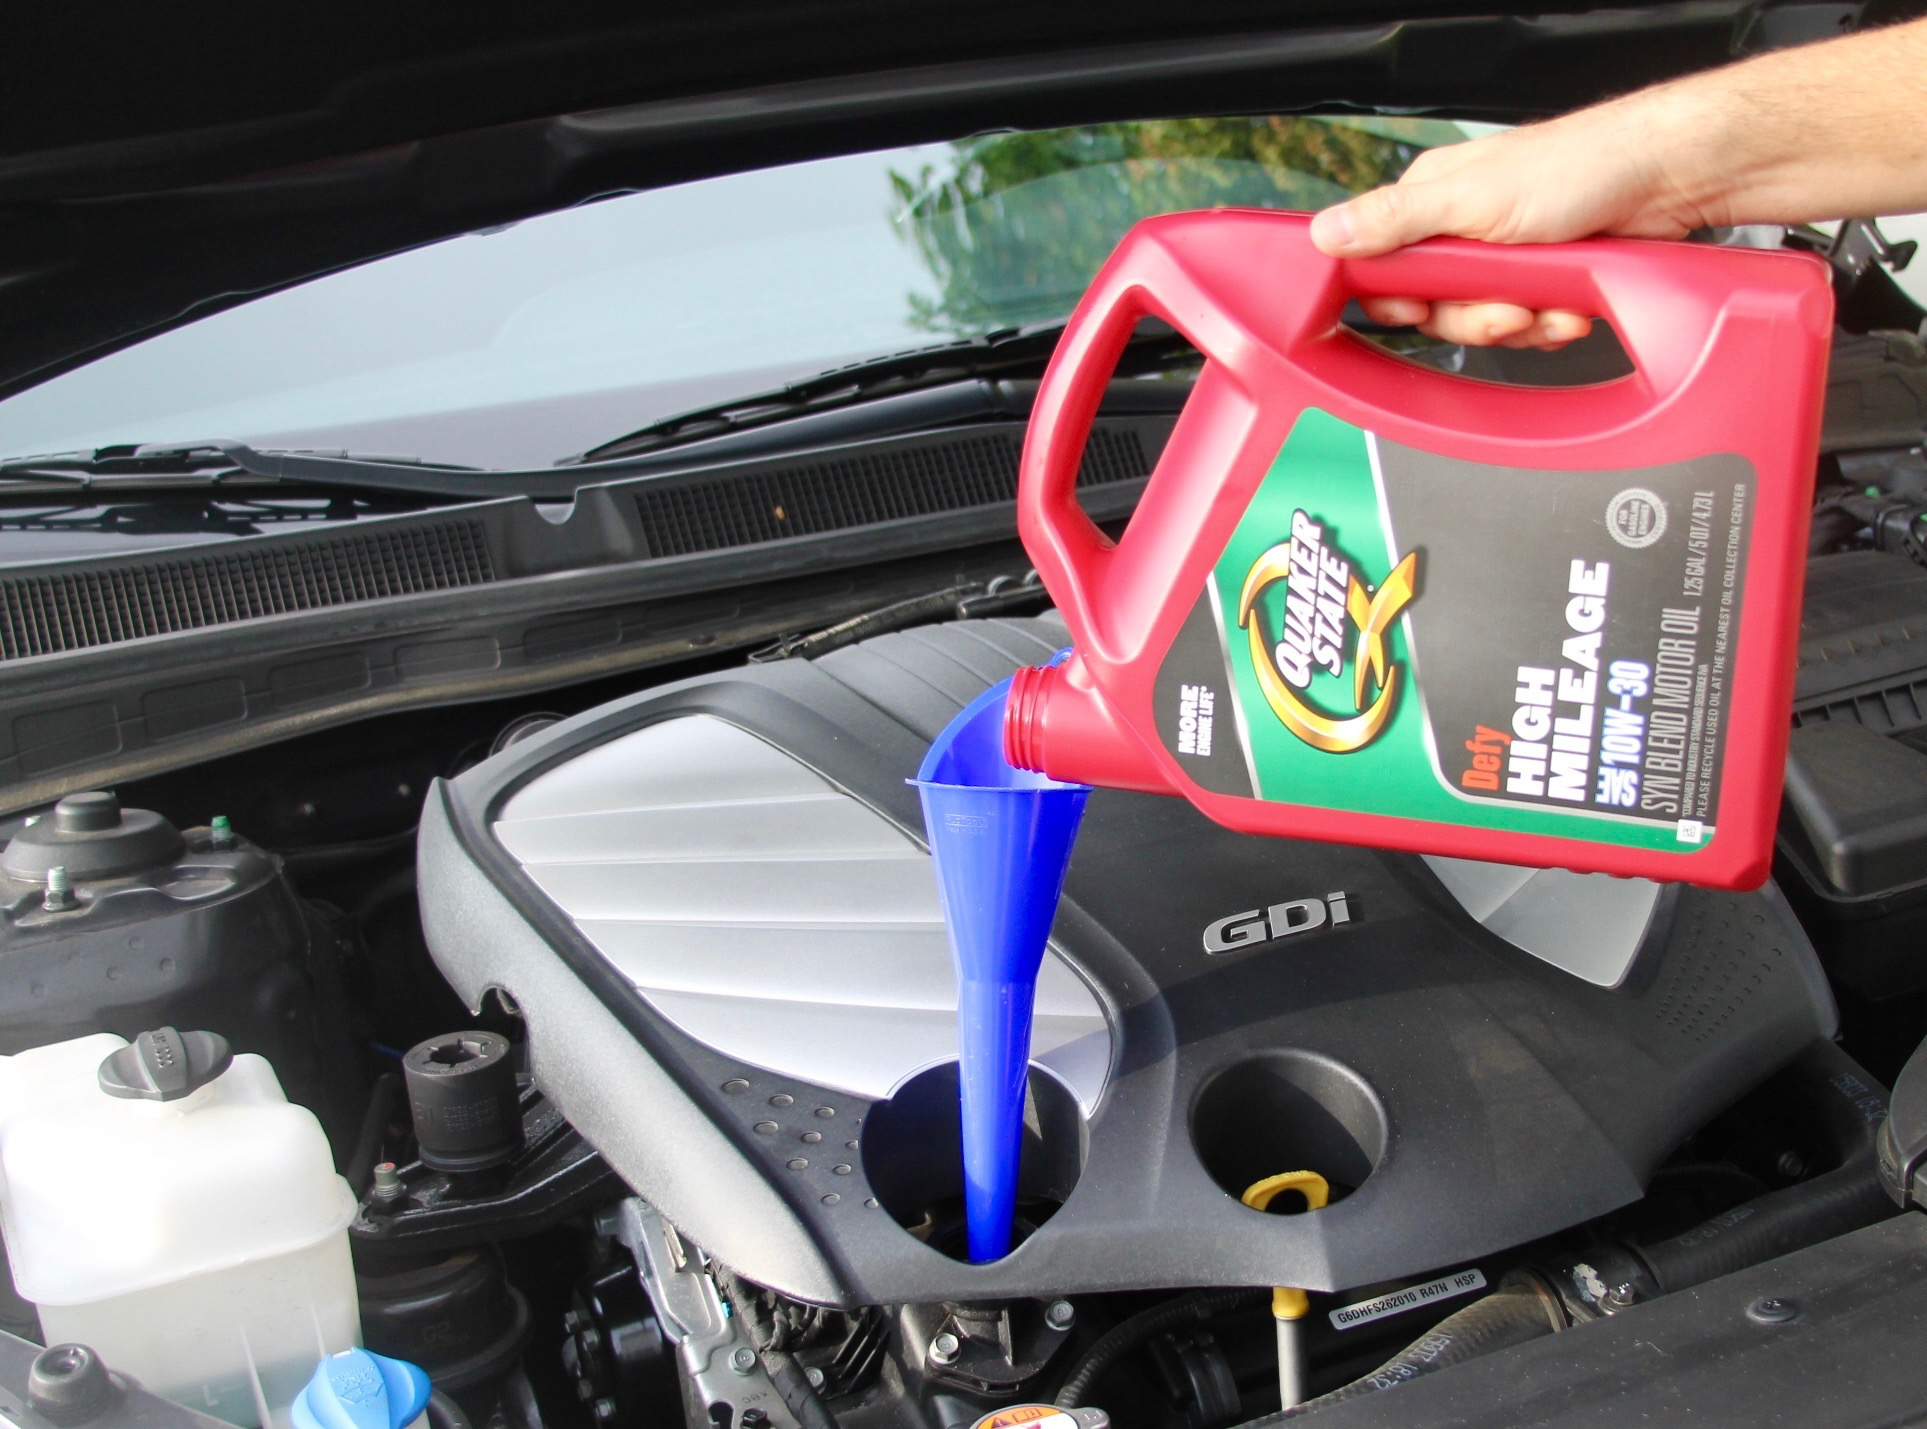 changing the oil on a car with Quaker State oil